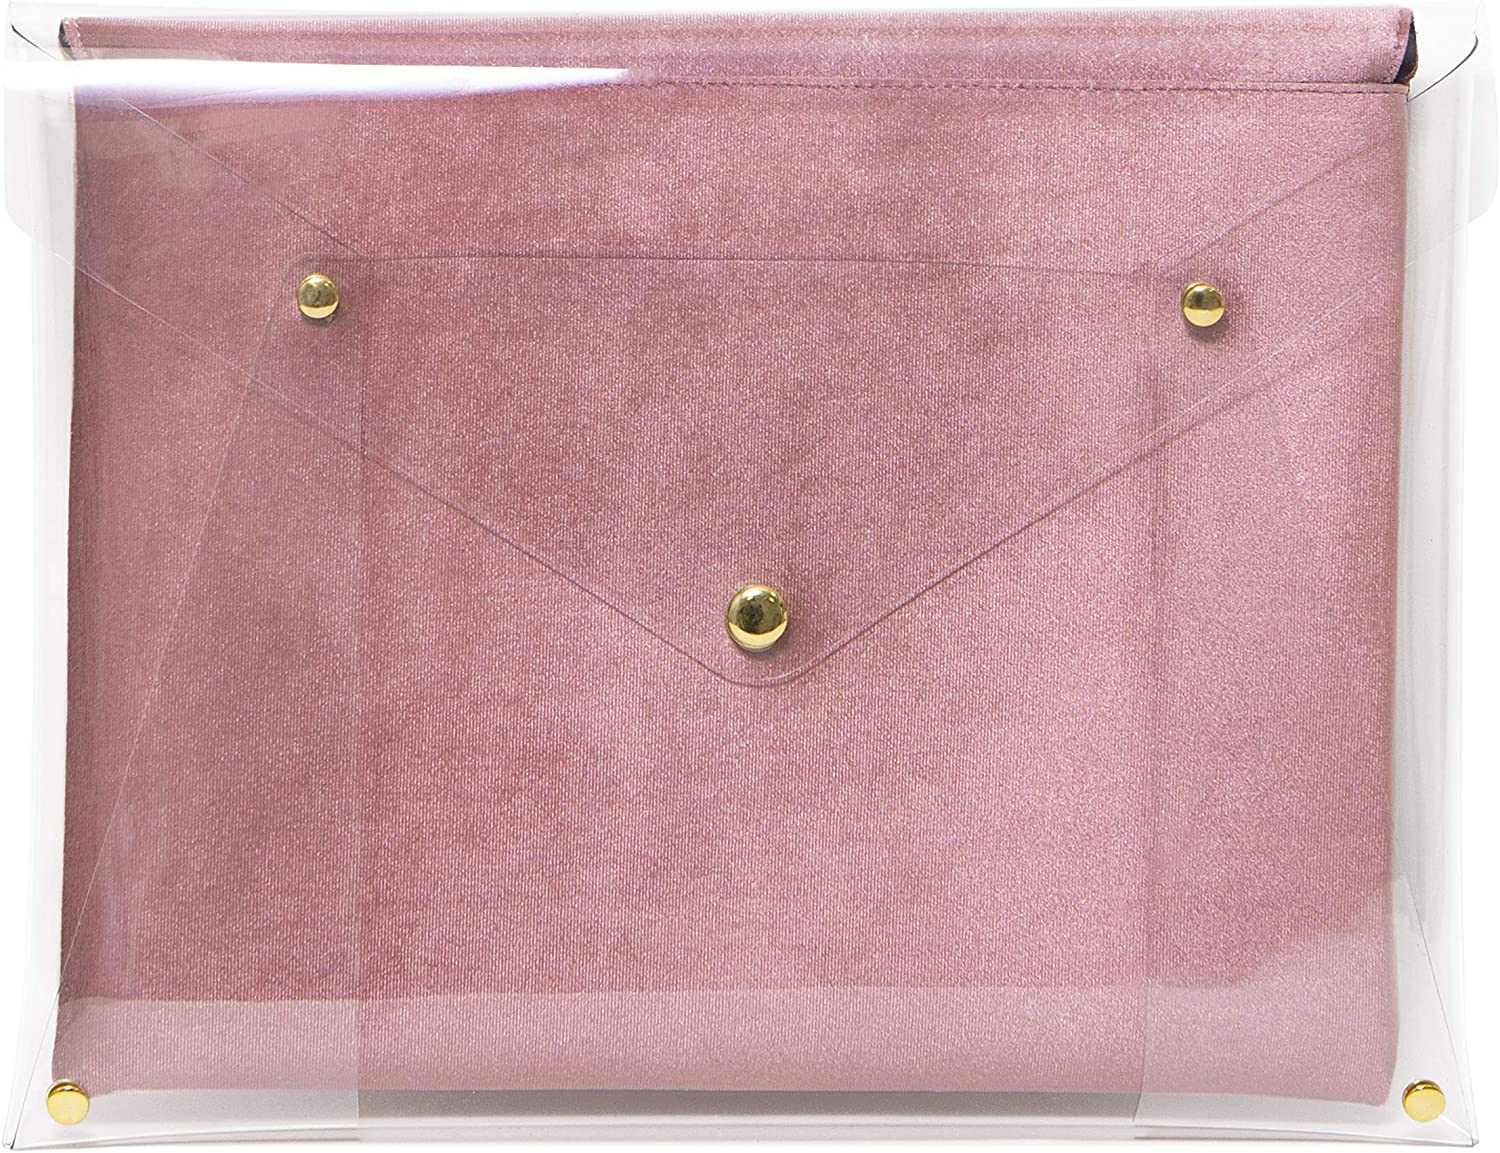 "Sonix PVC Rose Velvet Laptop Clutch, Padded Envelope Case for MacBook (13"") - Clear Pink Rose"